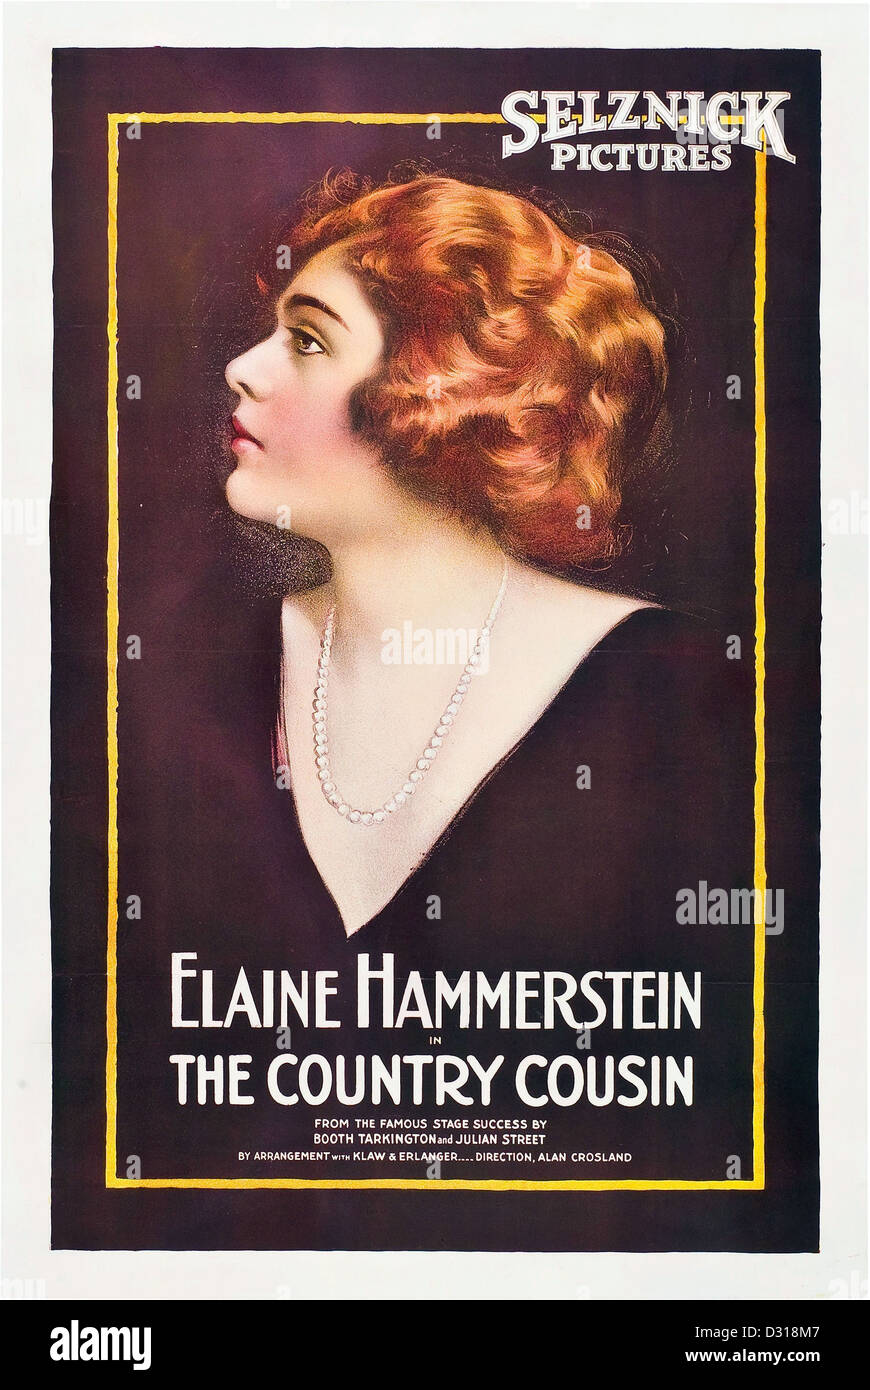 The country cousin - Stock Image